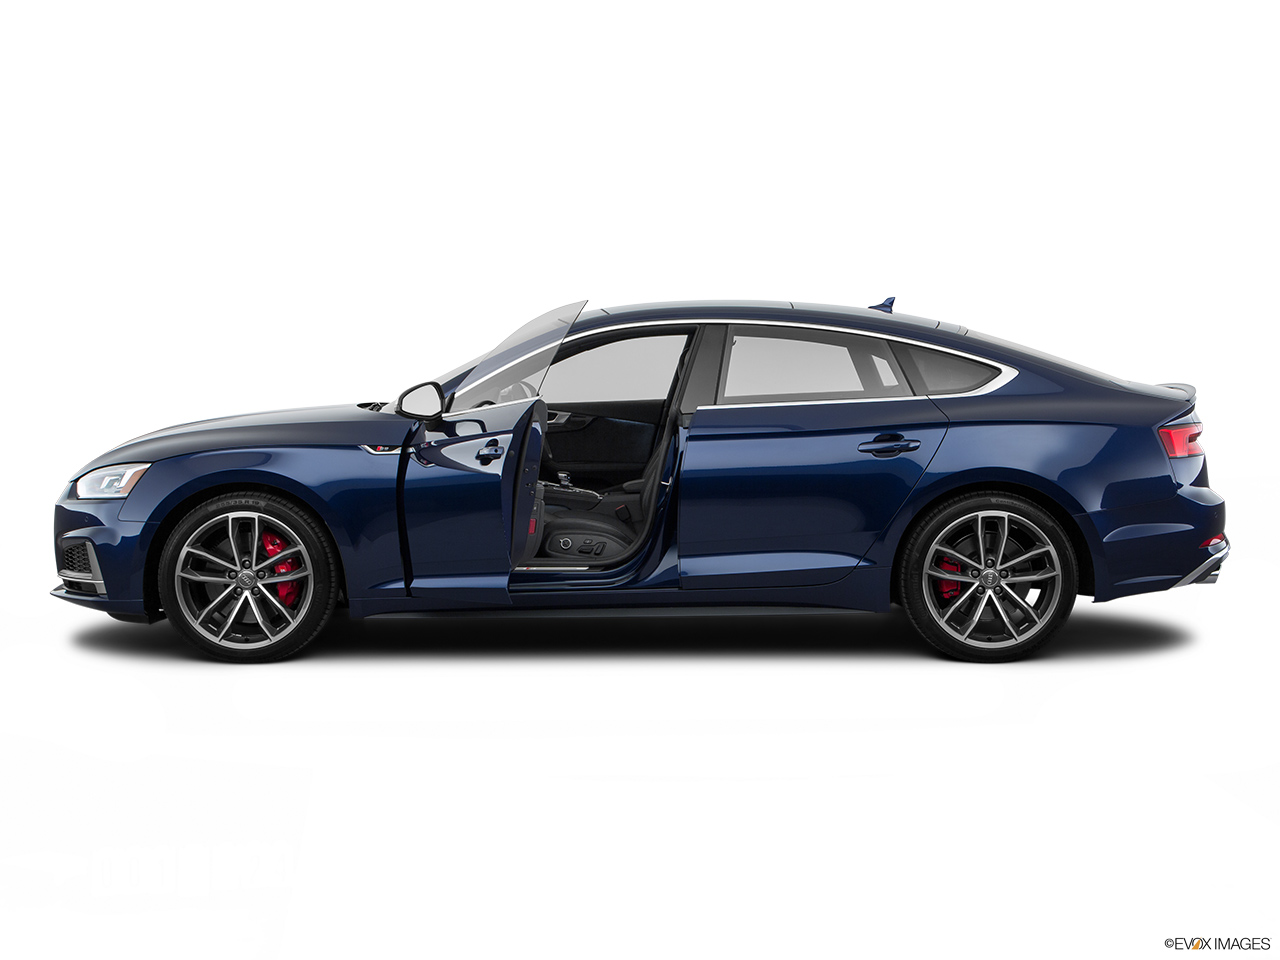 2019 Audi S5 Sportback Premium Plus 3.0 TFSI Driver's side profile with drivers side door open.